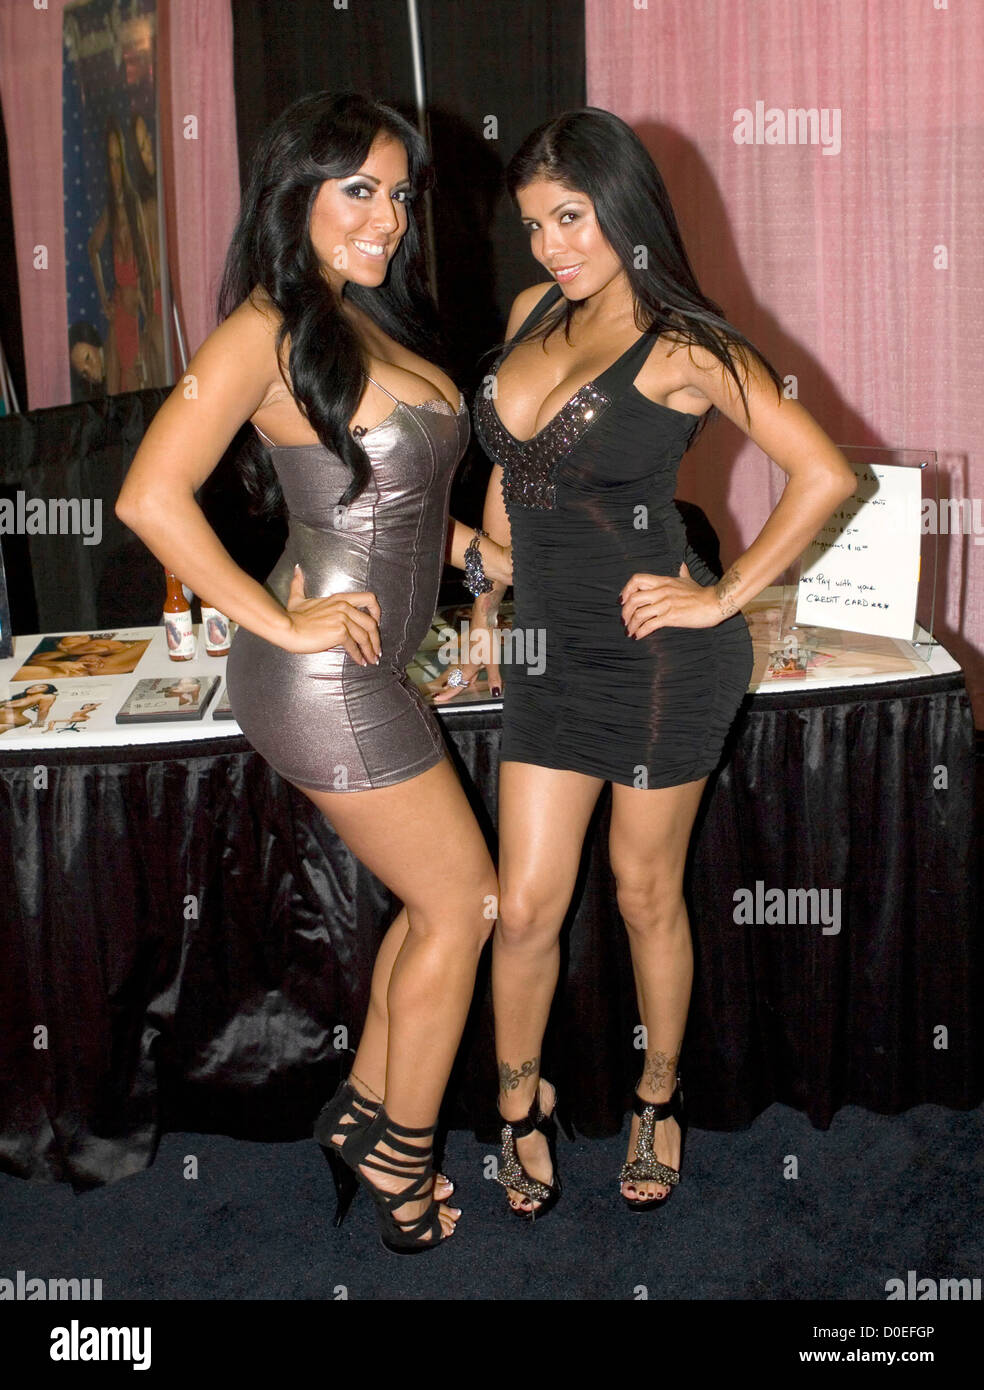 Kiara Mia And Alexis Amore Exxxotica Expo At The New Jersey Expo Center New Jersey